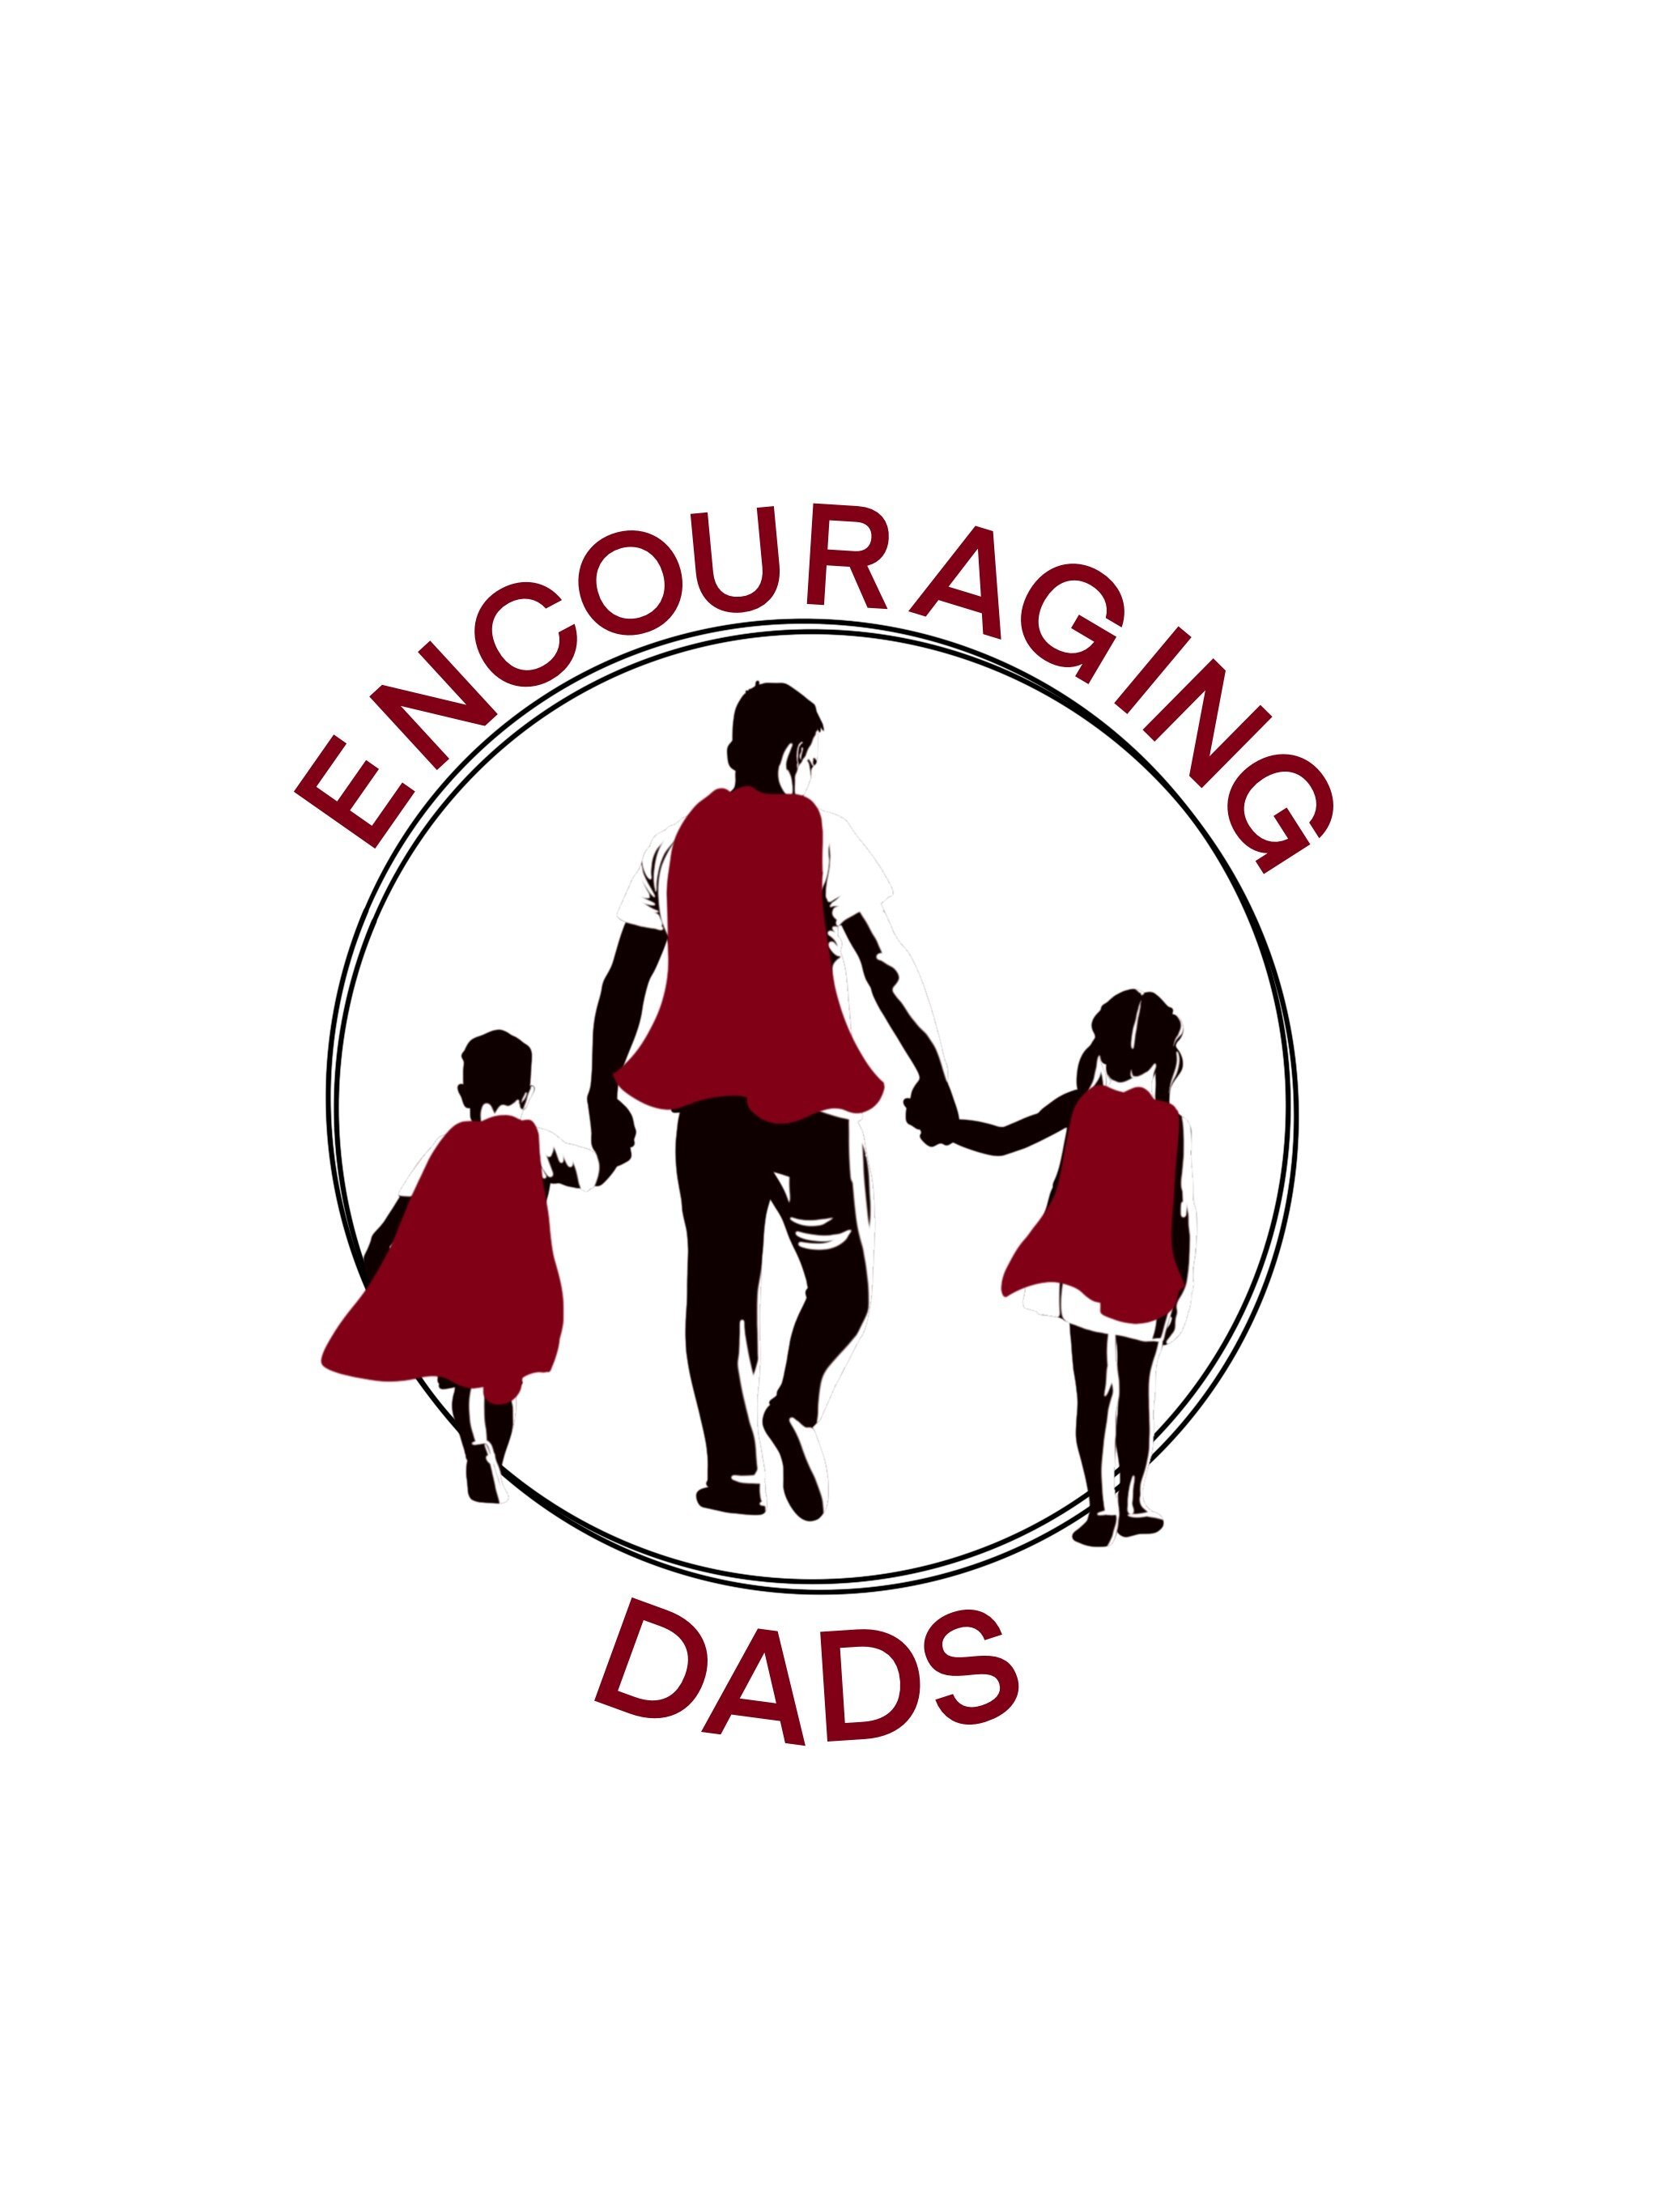 I'm honored to be both a guest blogger and a member of the advisory council for the Encouraging Dads Project!  https://www.thefathereffect.com/encouragingdads-com